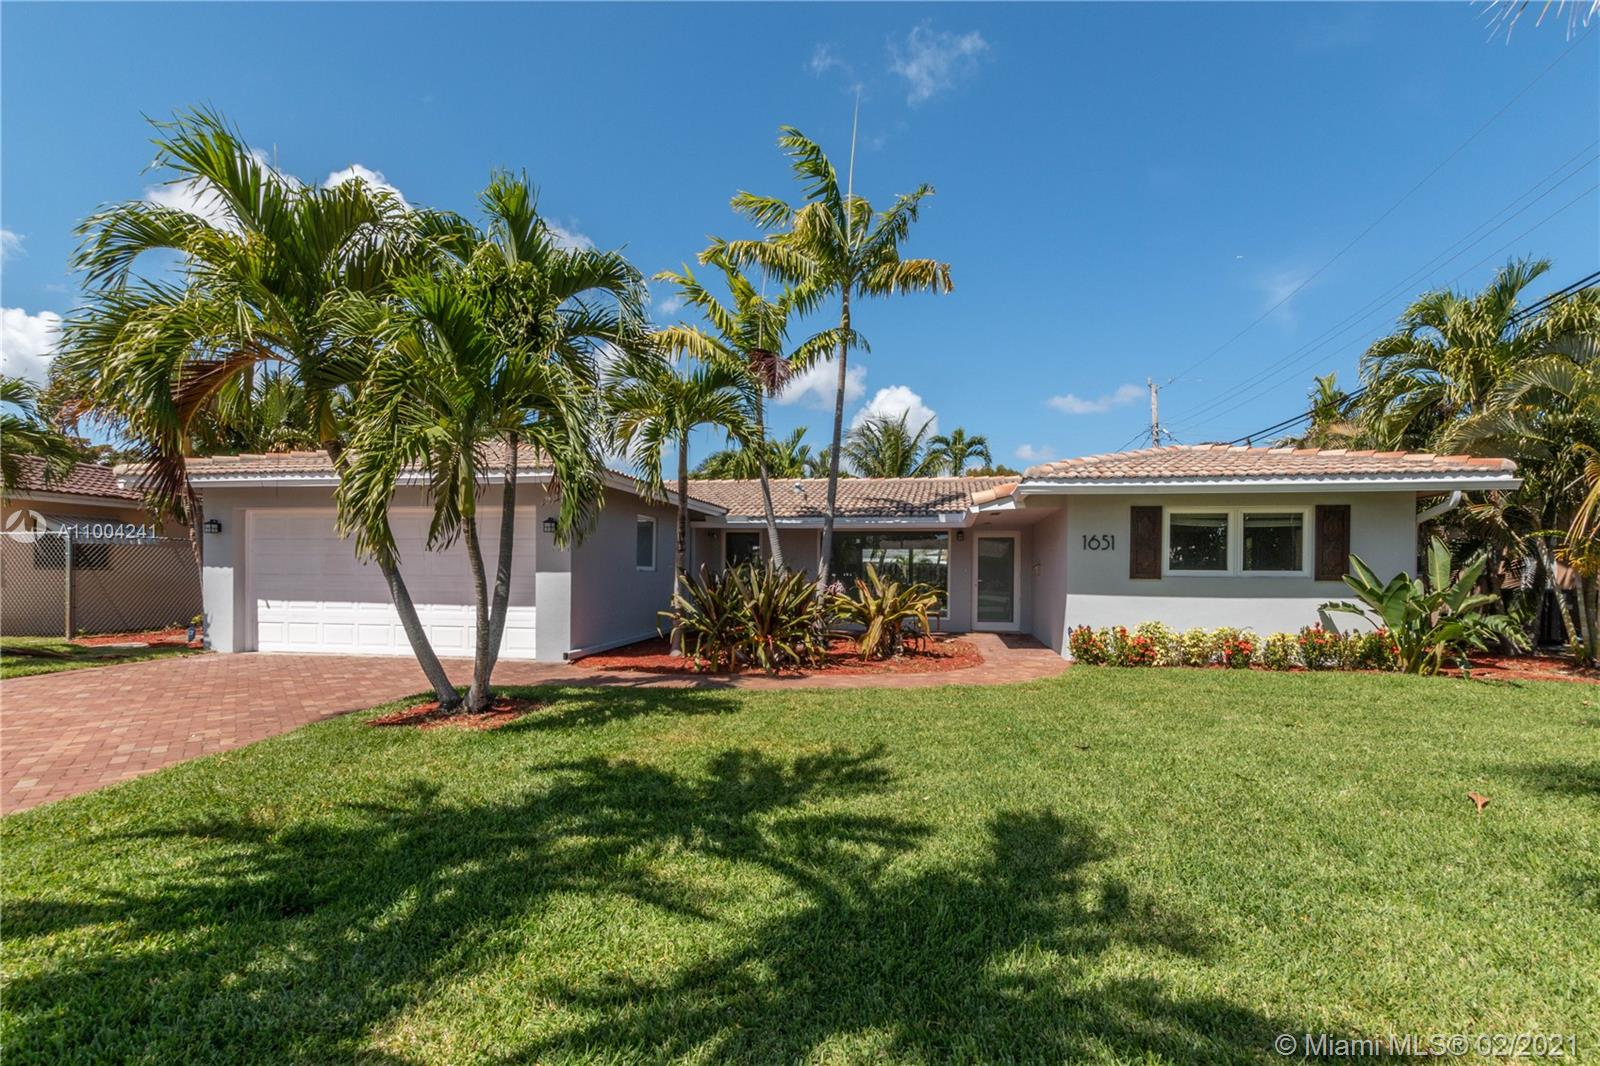 Beautiful 3 Bed / 2 Bath Coral Ridge Isles home! This completely remodeled, open floor plan home features impact window and doors, built-in closets, updated bathrooms, large back yard and two car garage. Property is rented until 6/14/2021 for $3,000/per Month.